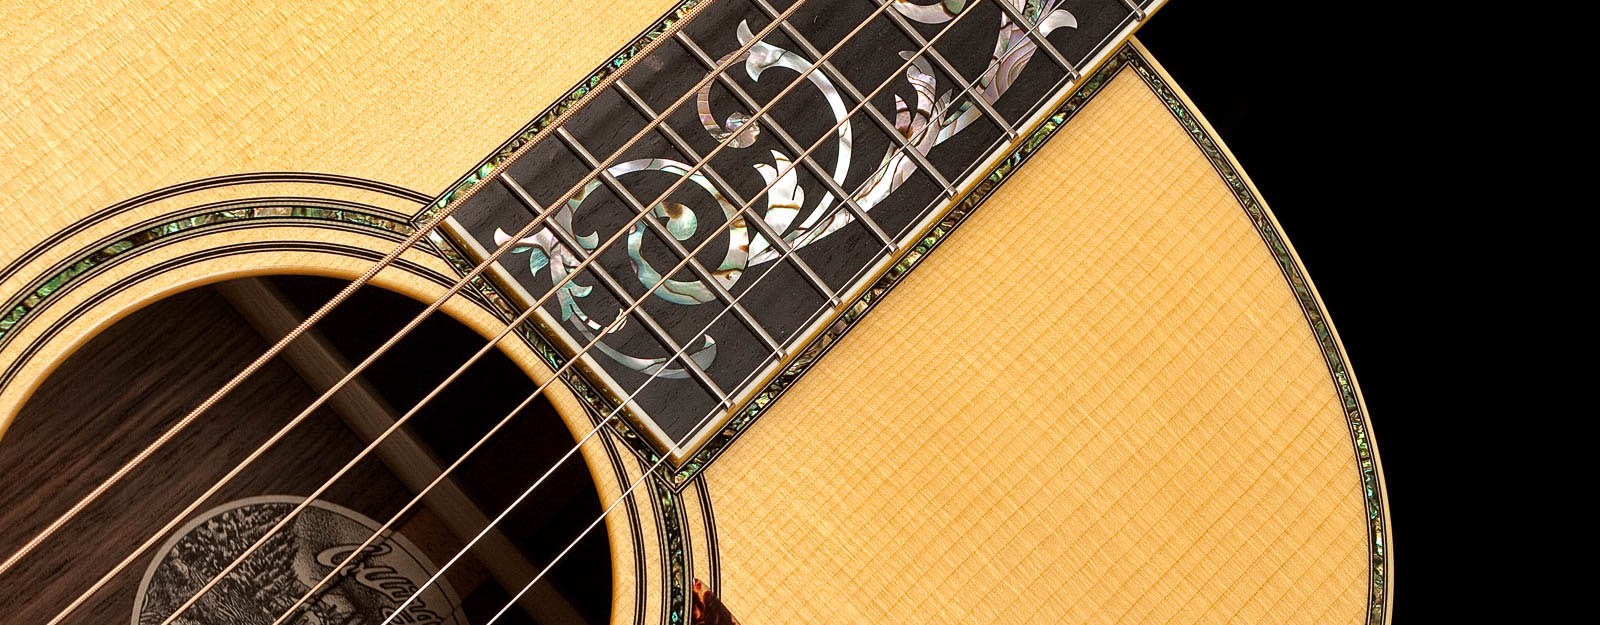 Custom Acoustic Guitar with Tree of Life Fingerboard Inlay